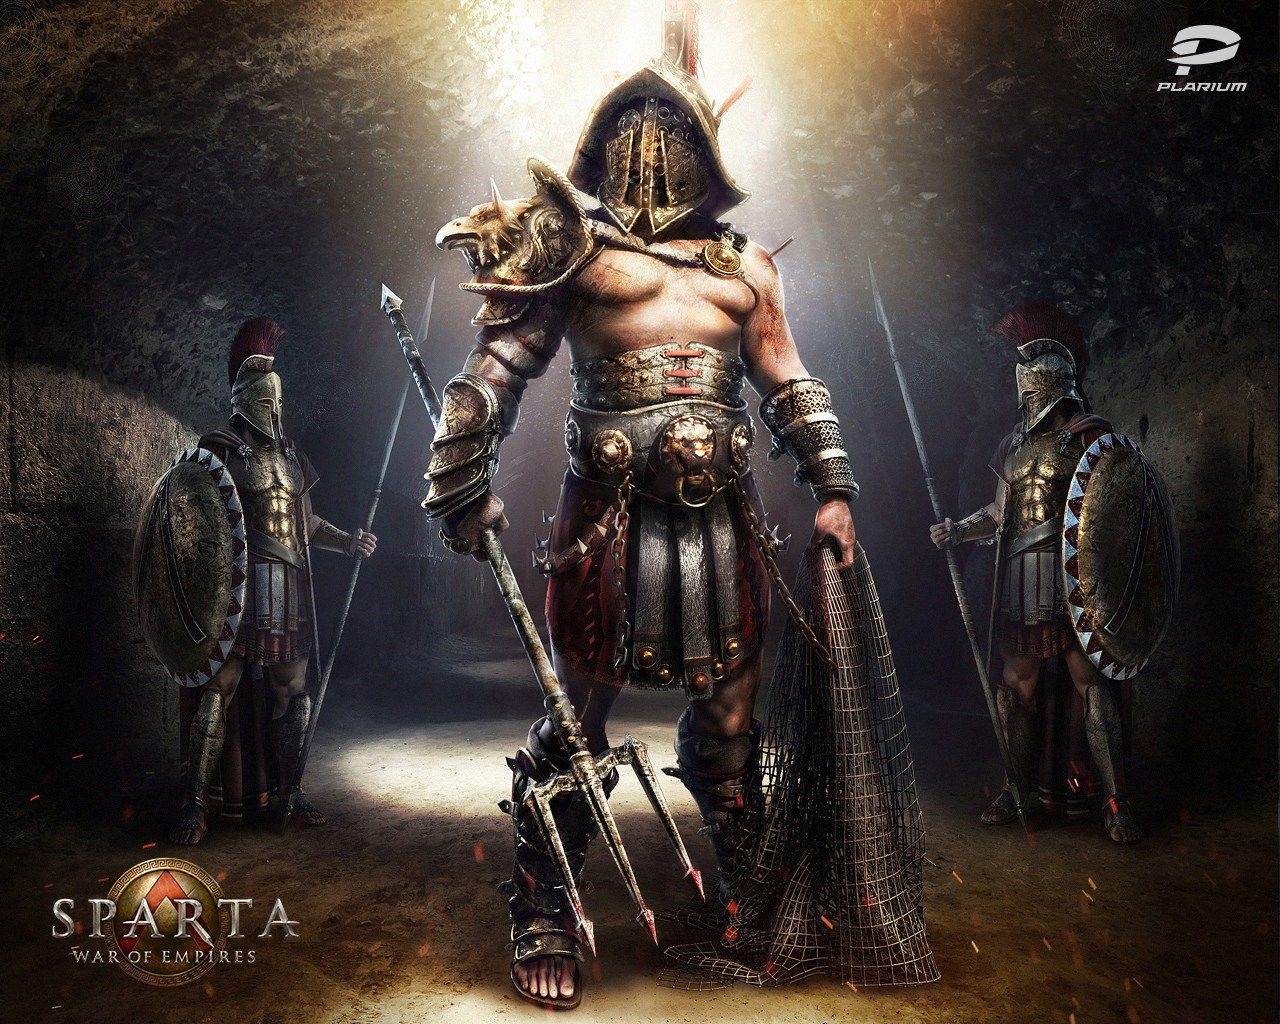 2560x1440 43 Spartan Wallpapers HD Creative Images Full